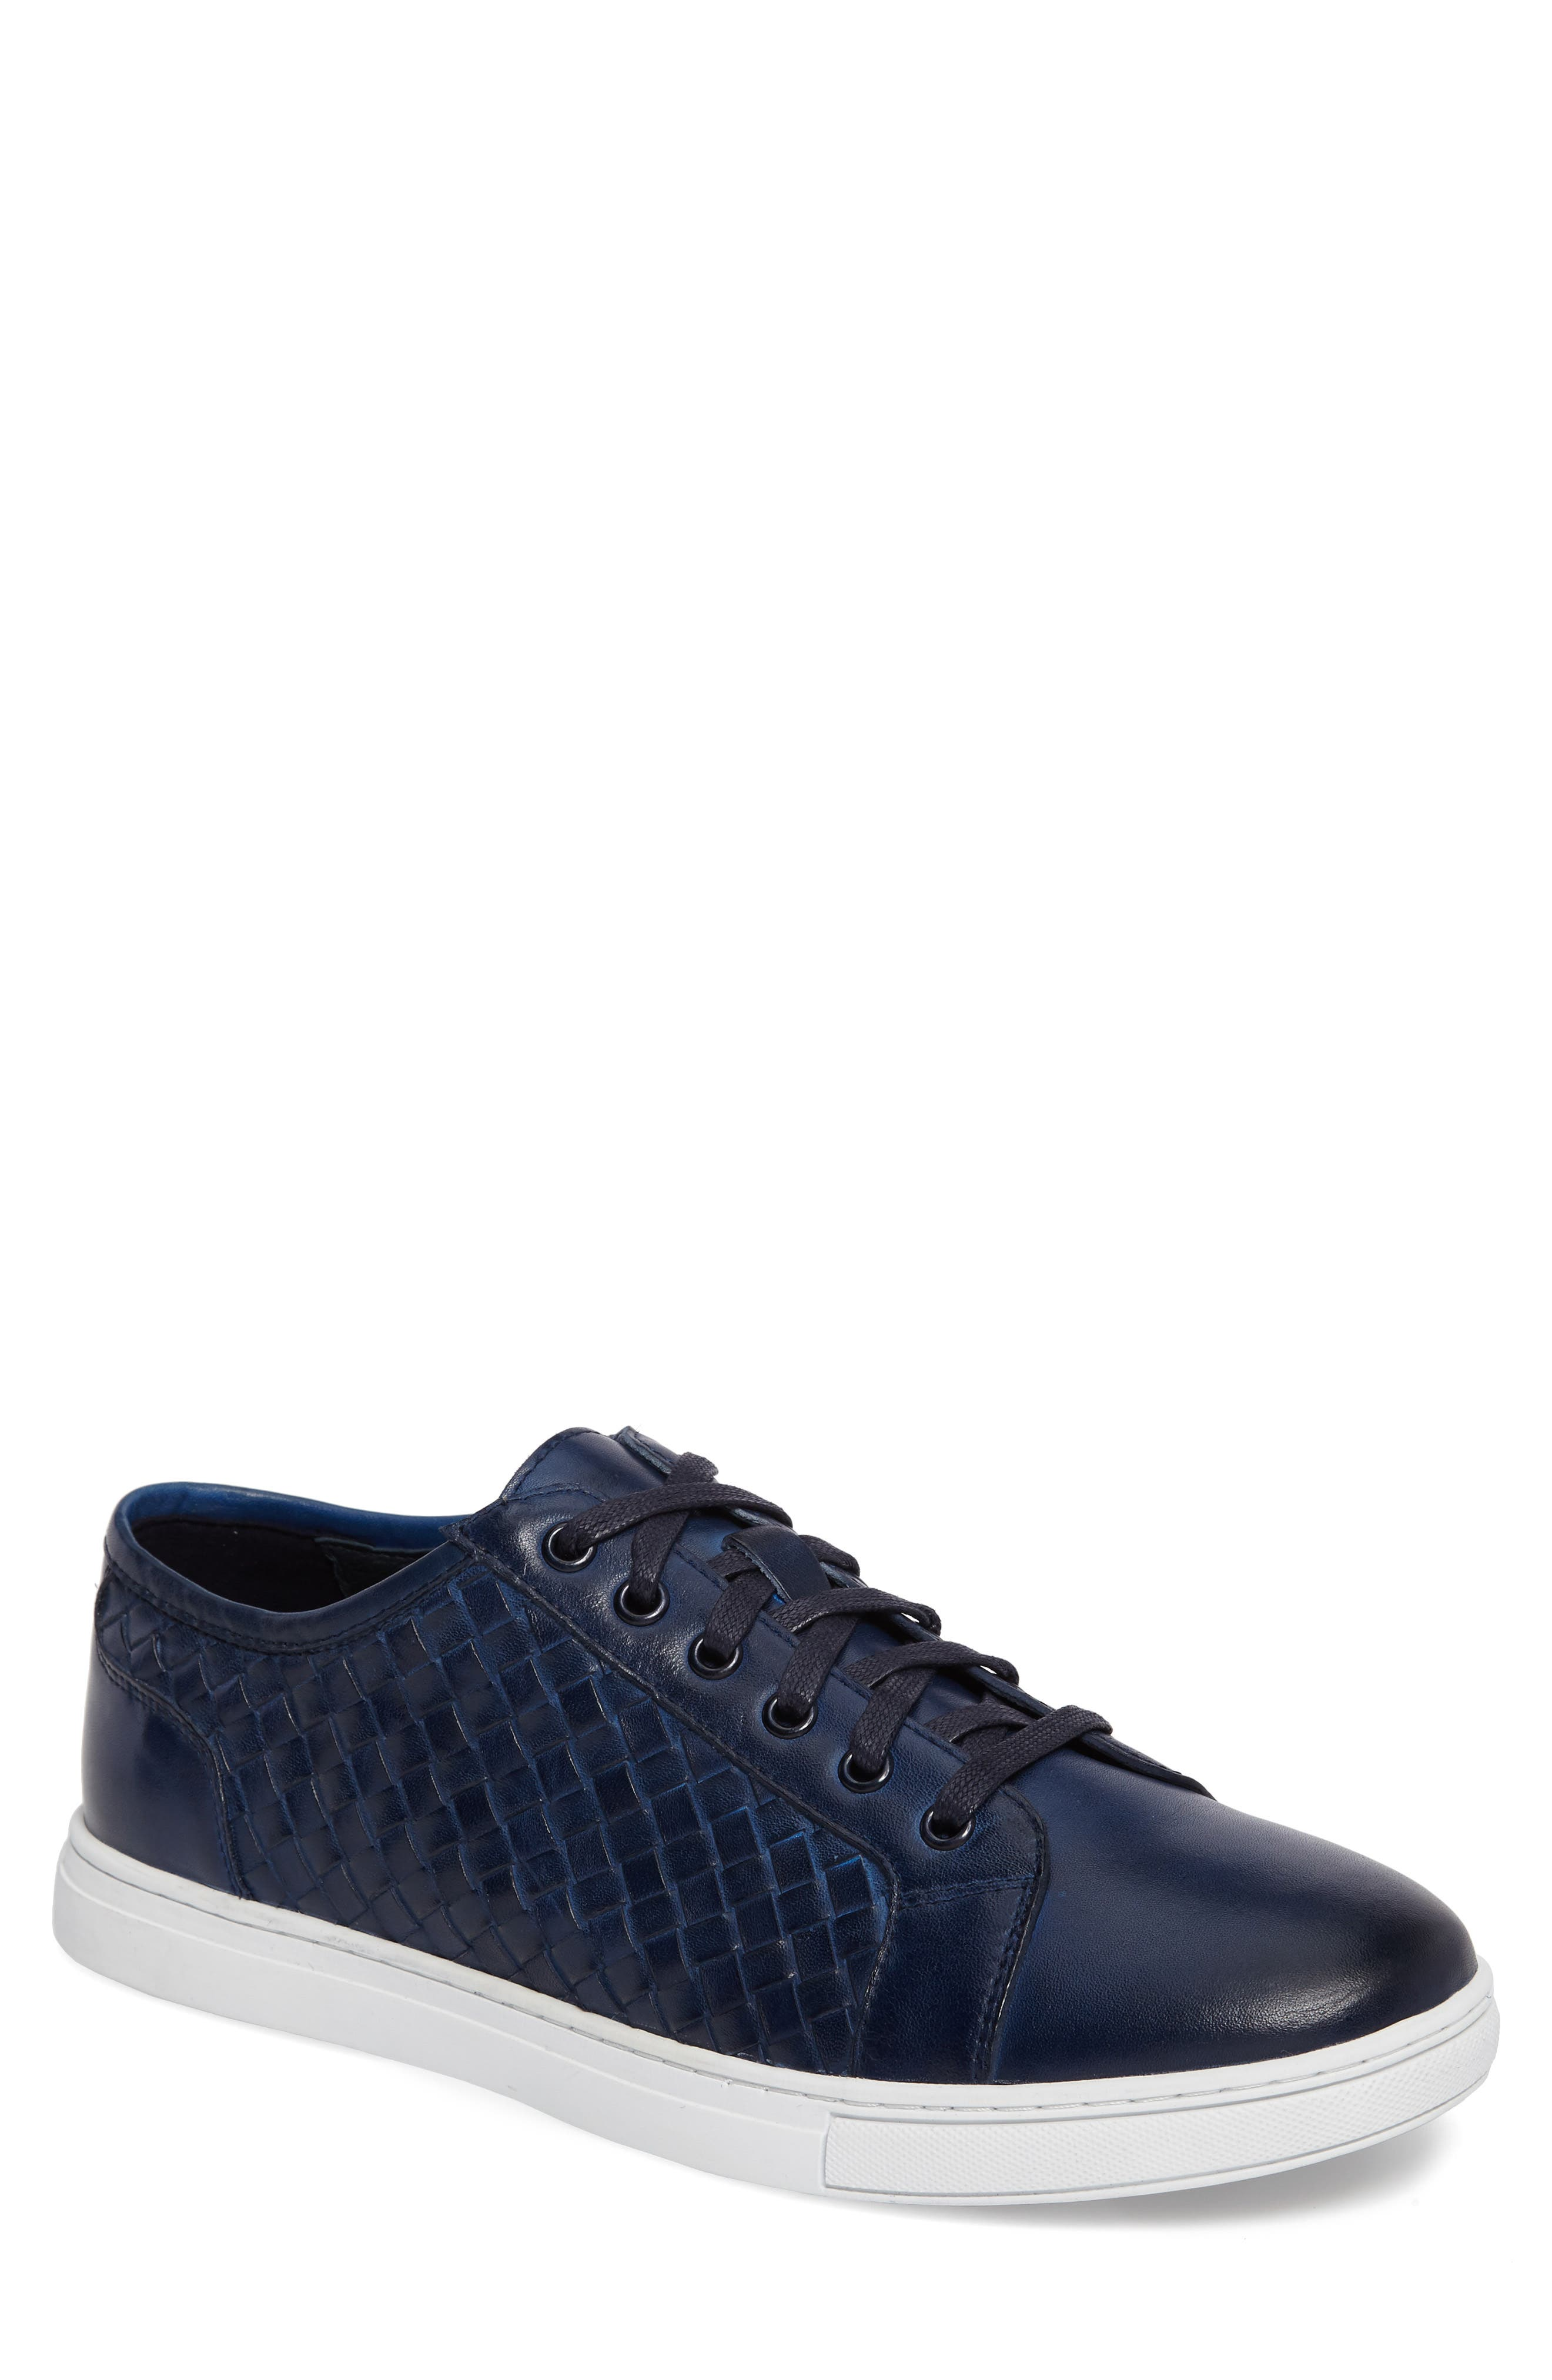 Fader Sneaker,                         Main,                         color, Blue Leather